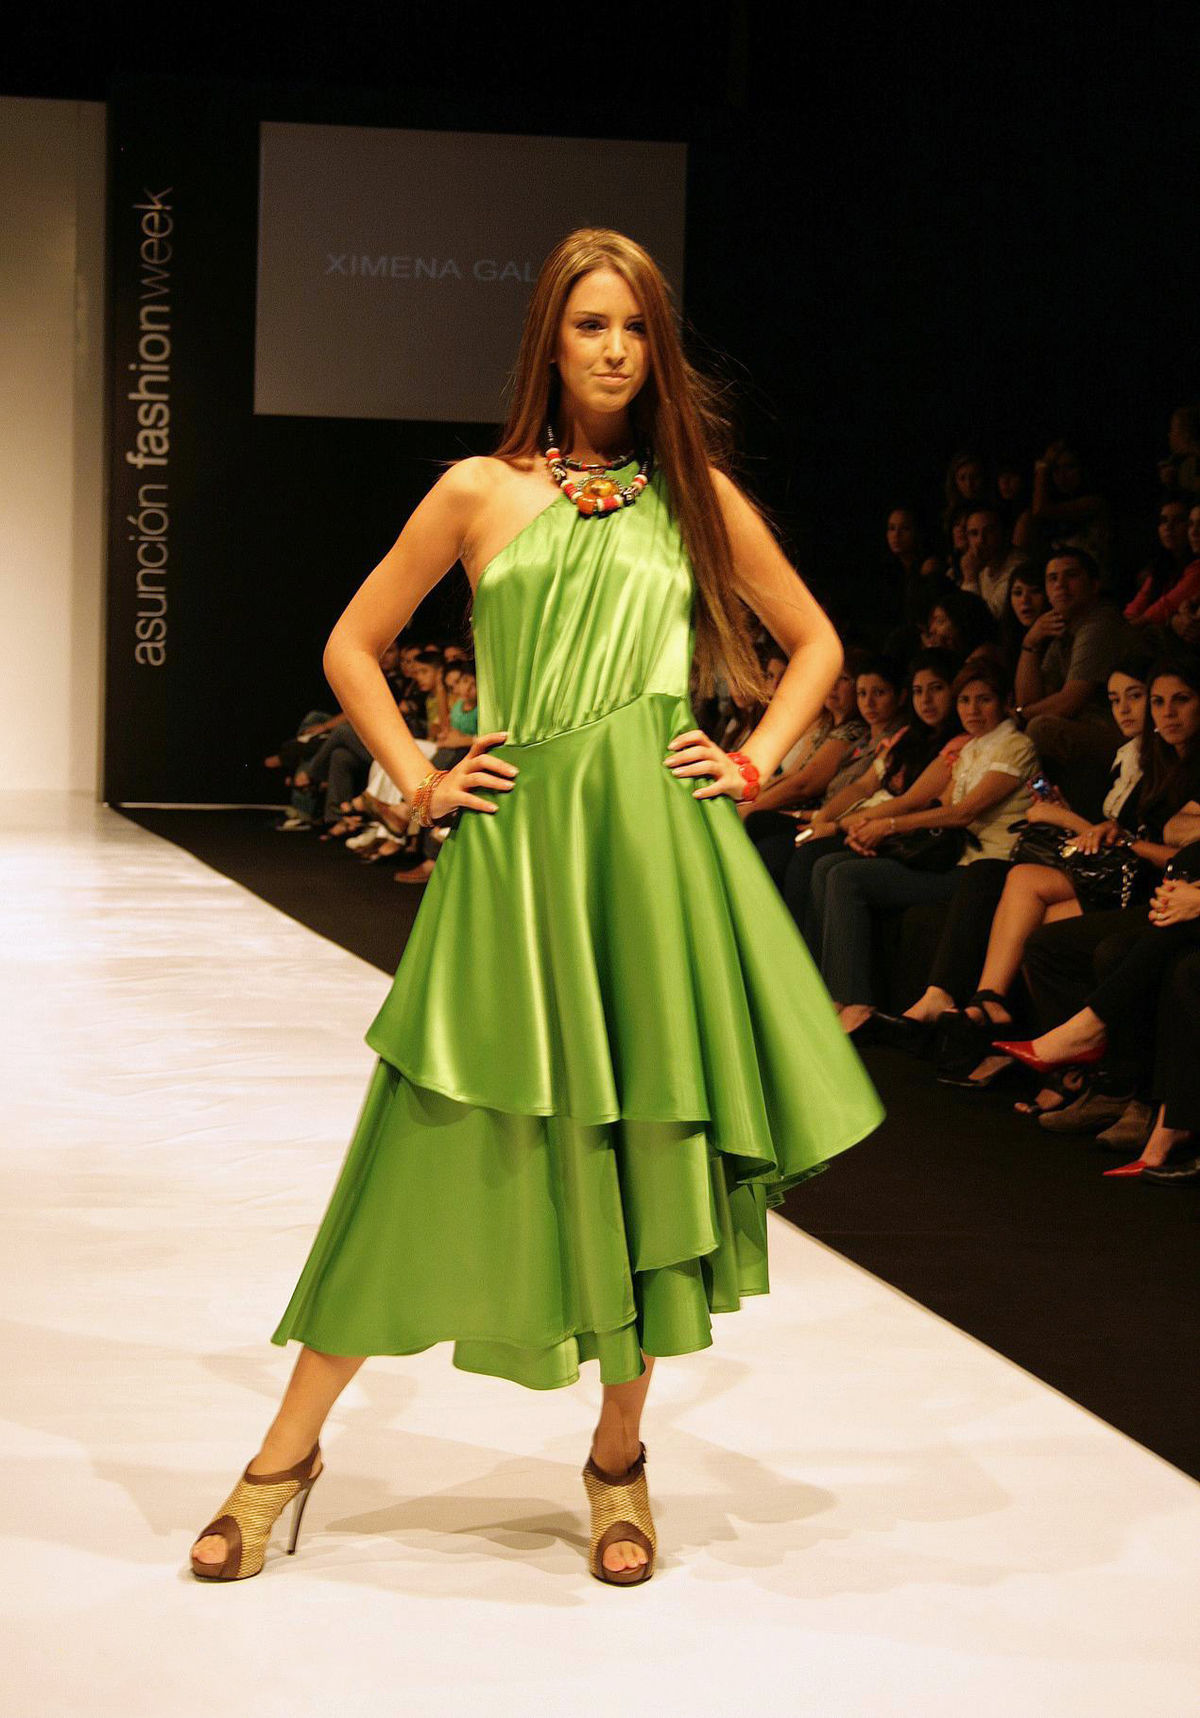 asunci243n fashion week wikipedia la enciclopedia libre